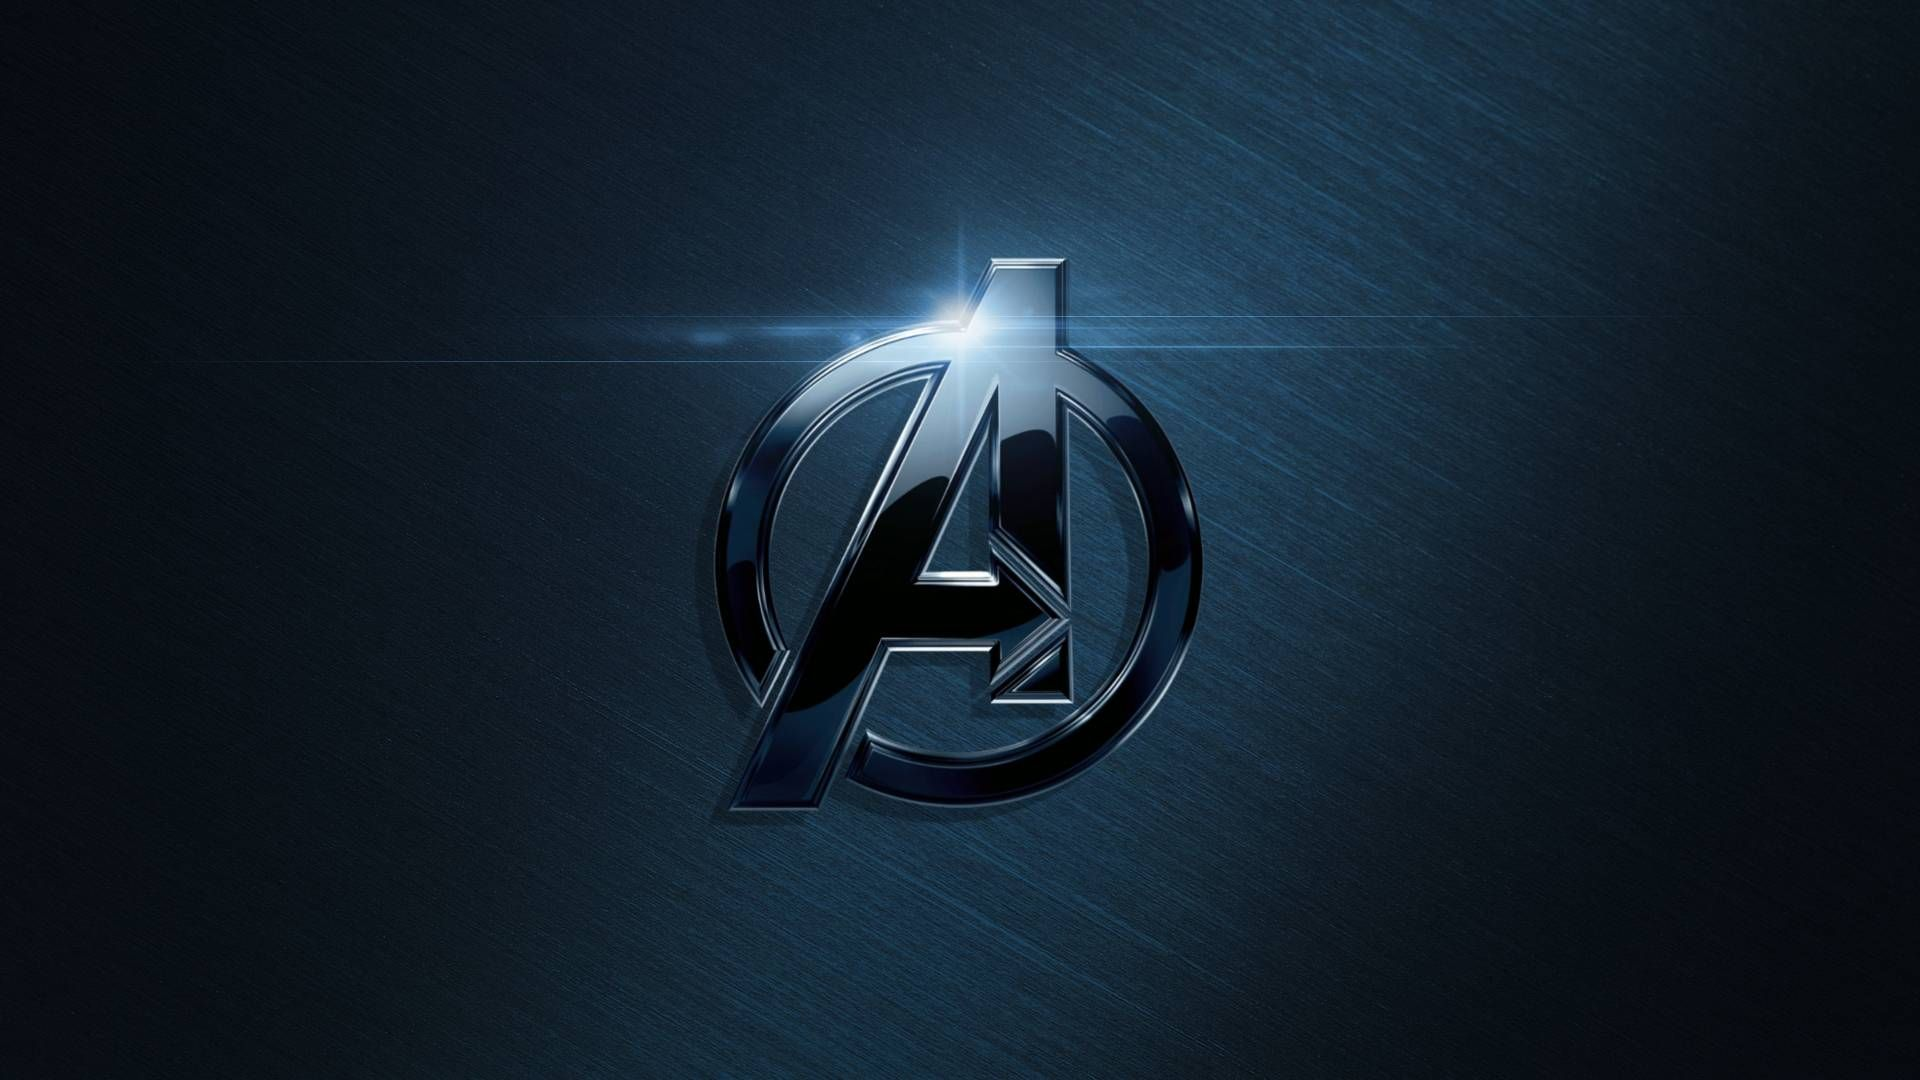 Avengers Age Of Ultron Hd Wallpapers Backgrounds 19201080